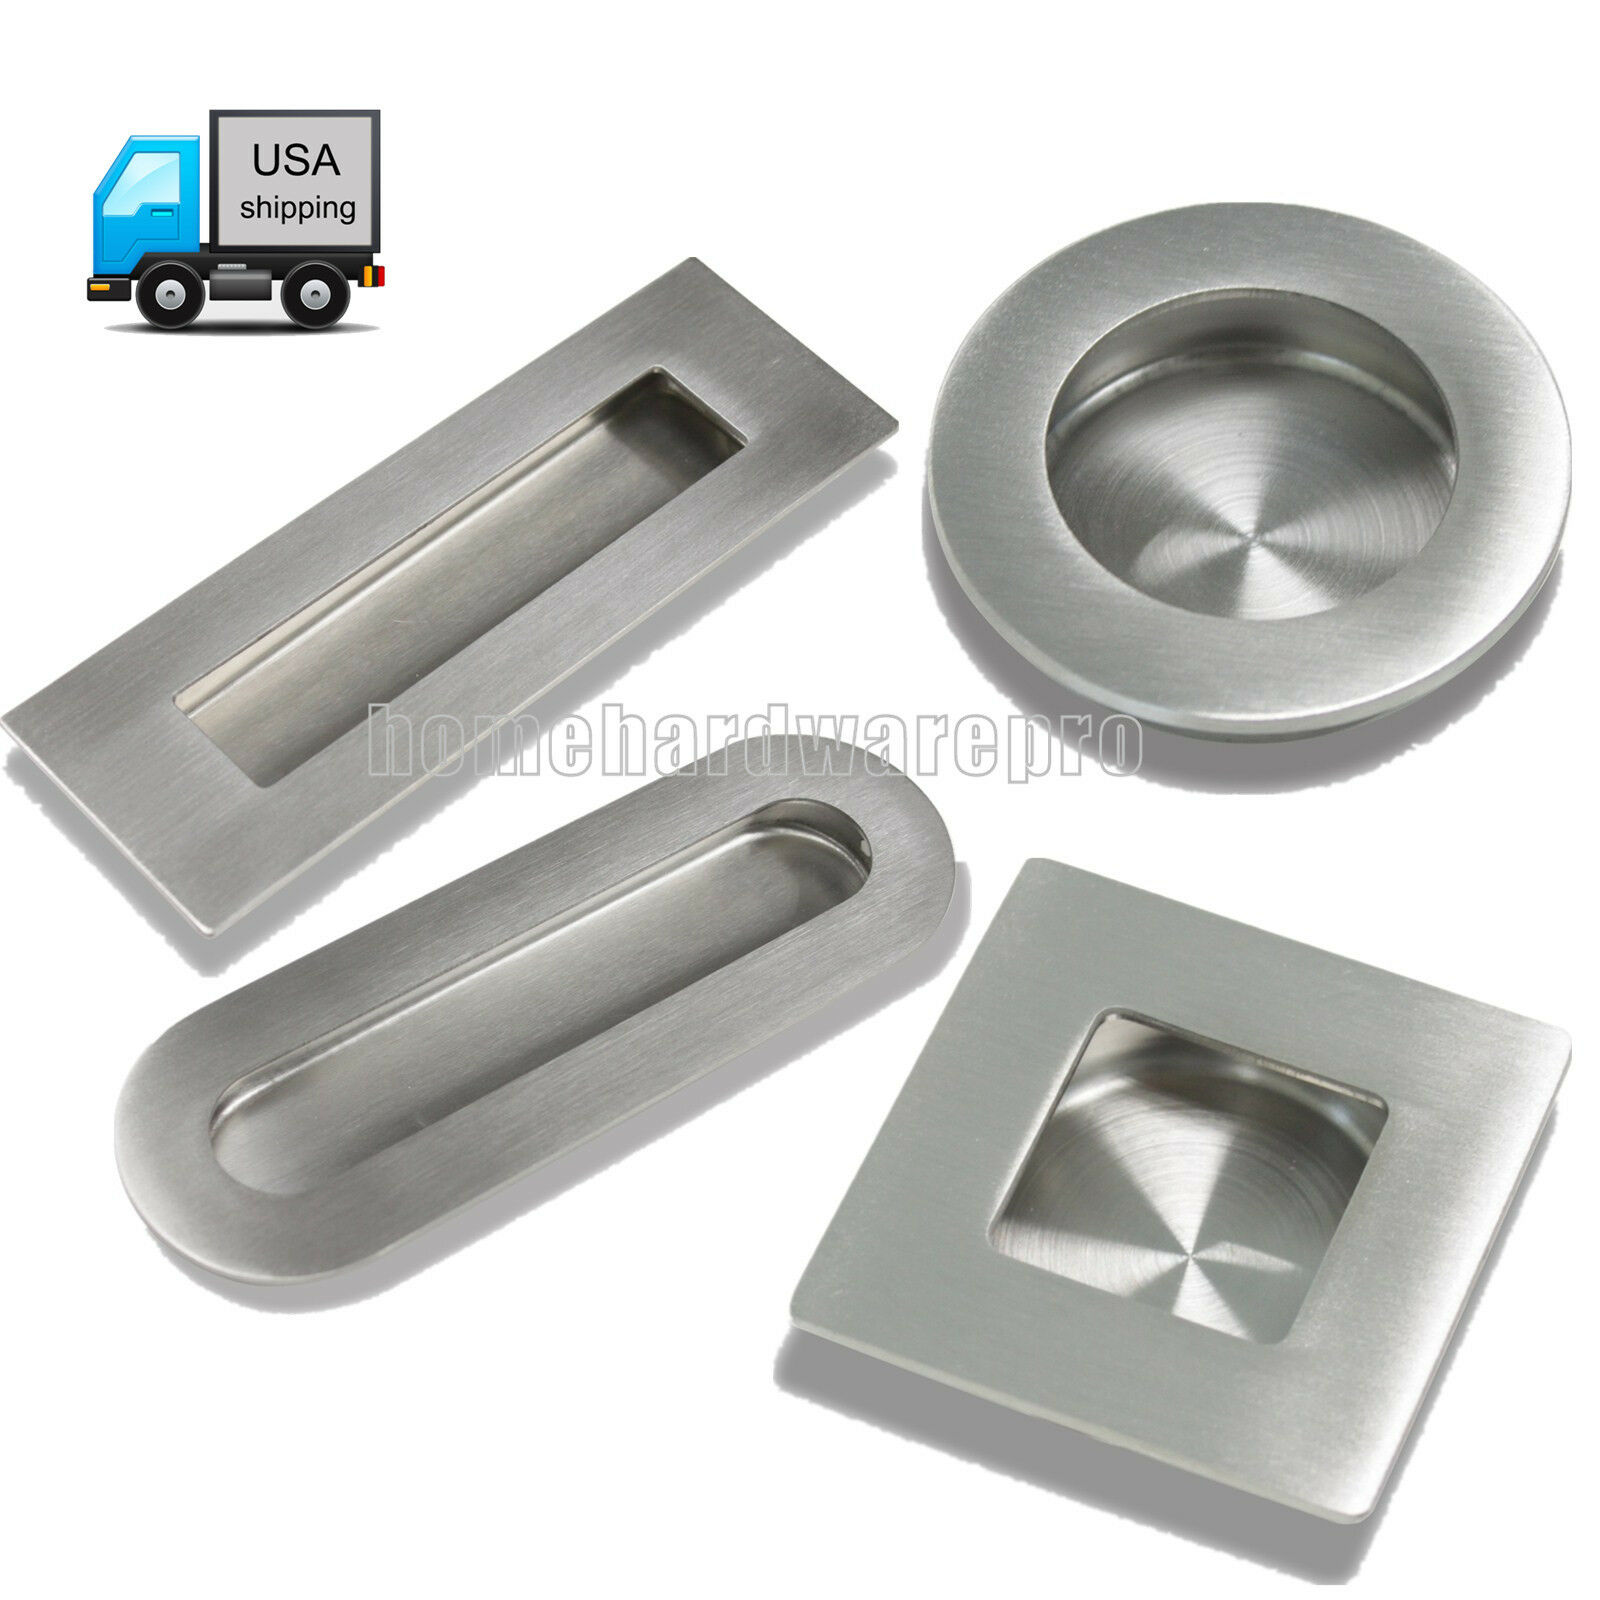 Closet 2 Packs Finger Pulls,Abuff Sliding Door Flush Pull Recessed Flush Handles with Hidden Concealed Screws for Cabinets Drawers 5.59x1.69x0.62